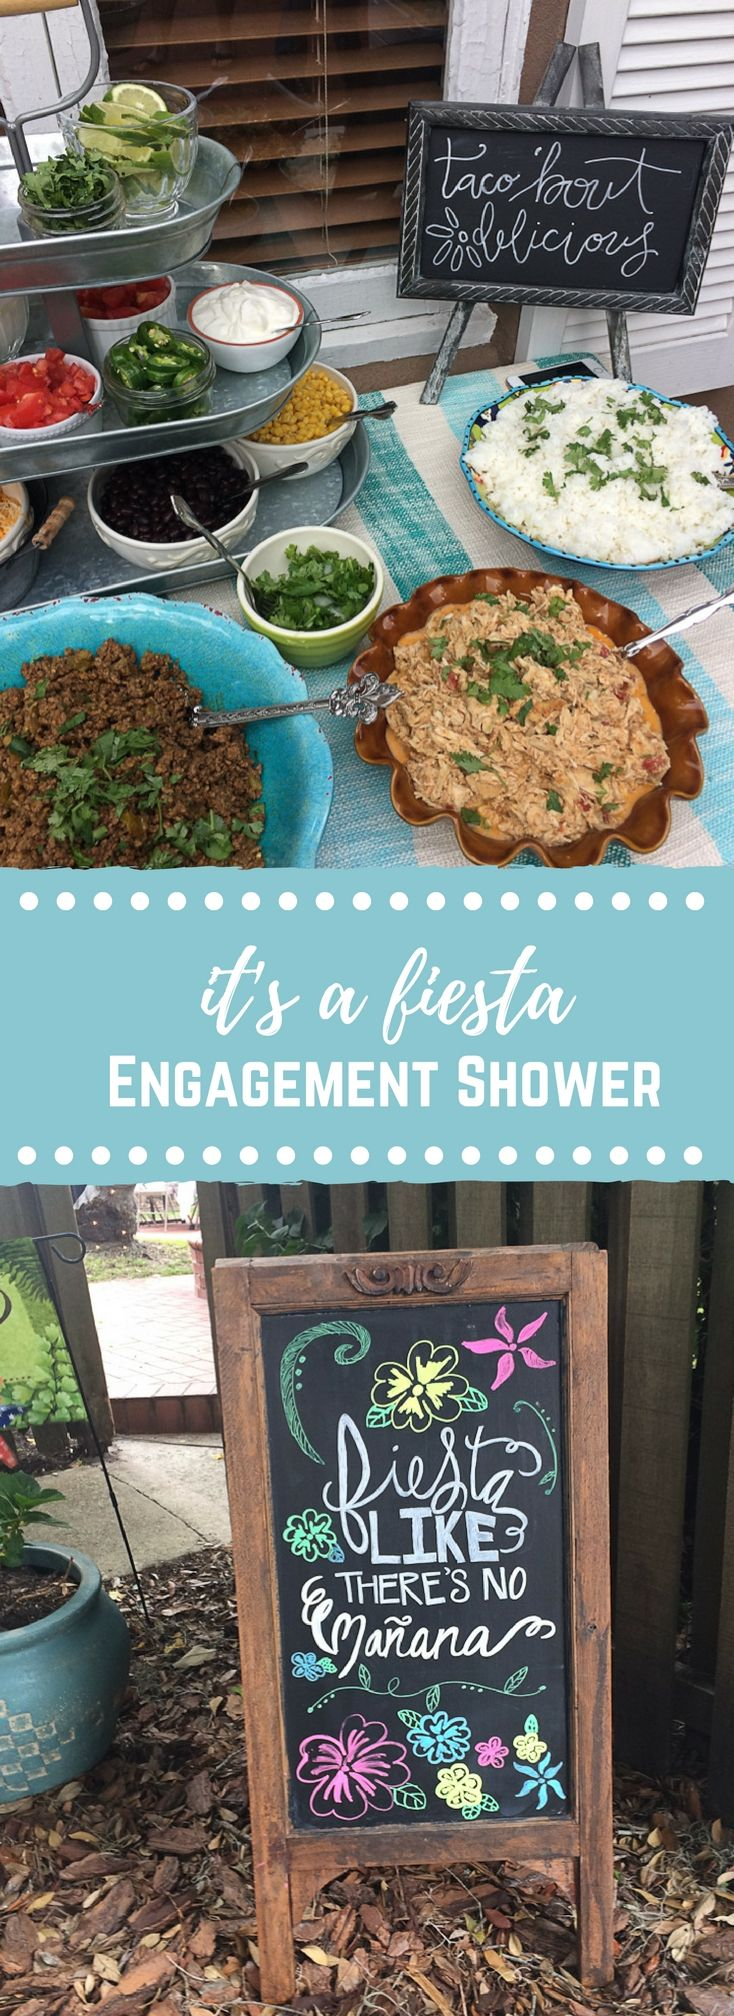 Fiesta Engagement Shower http://www.loveandzest.com/2016/08/fiesta-engagement-shower-couples-theme.html